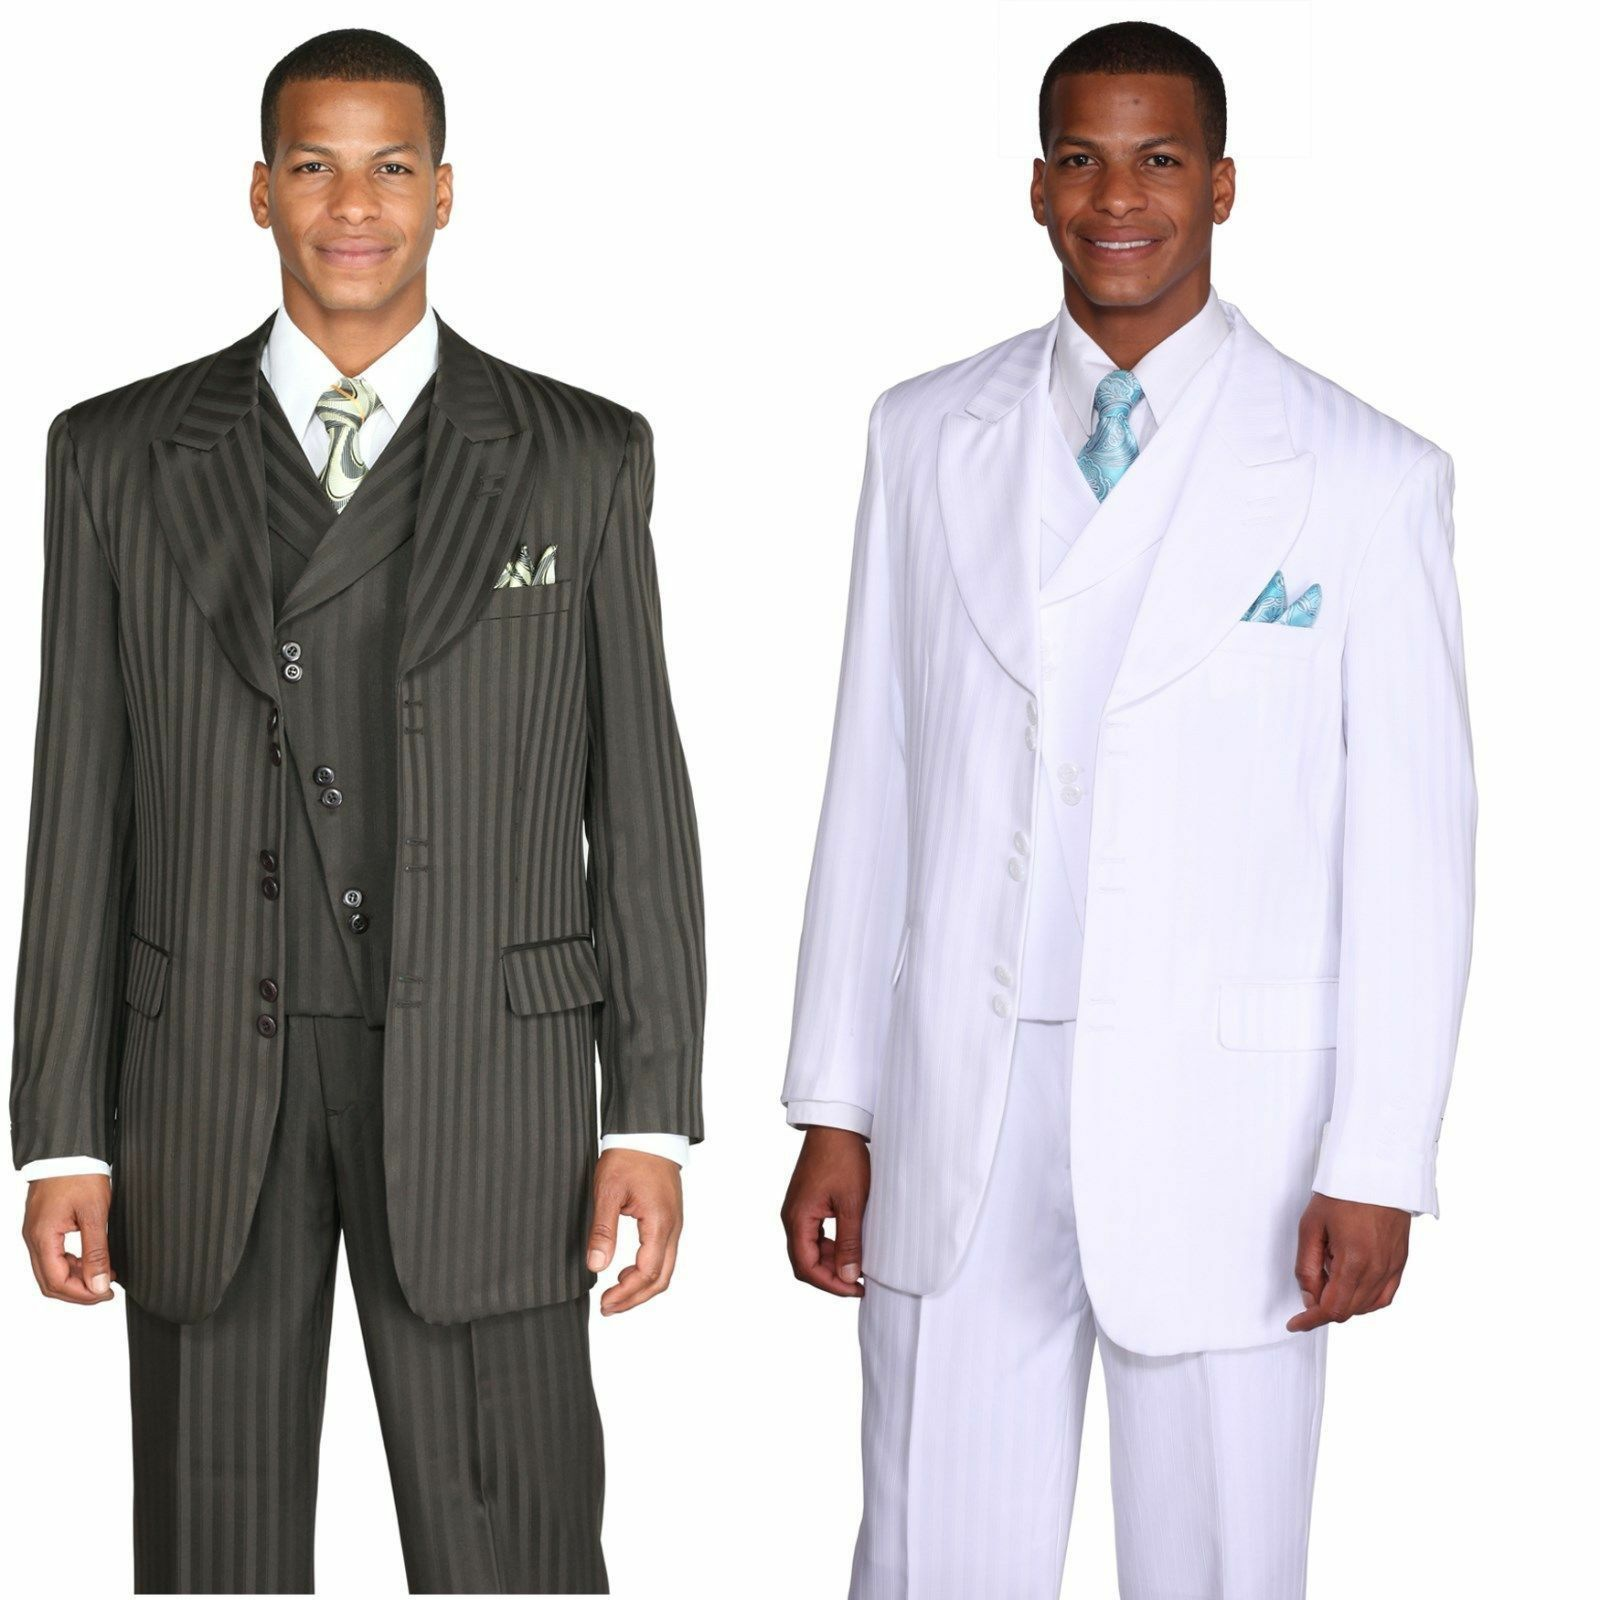 Men's 3 Piece Fashion Tone on Tone Stripe Suits with Cutaway Vest 29197V